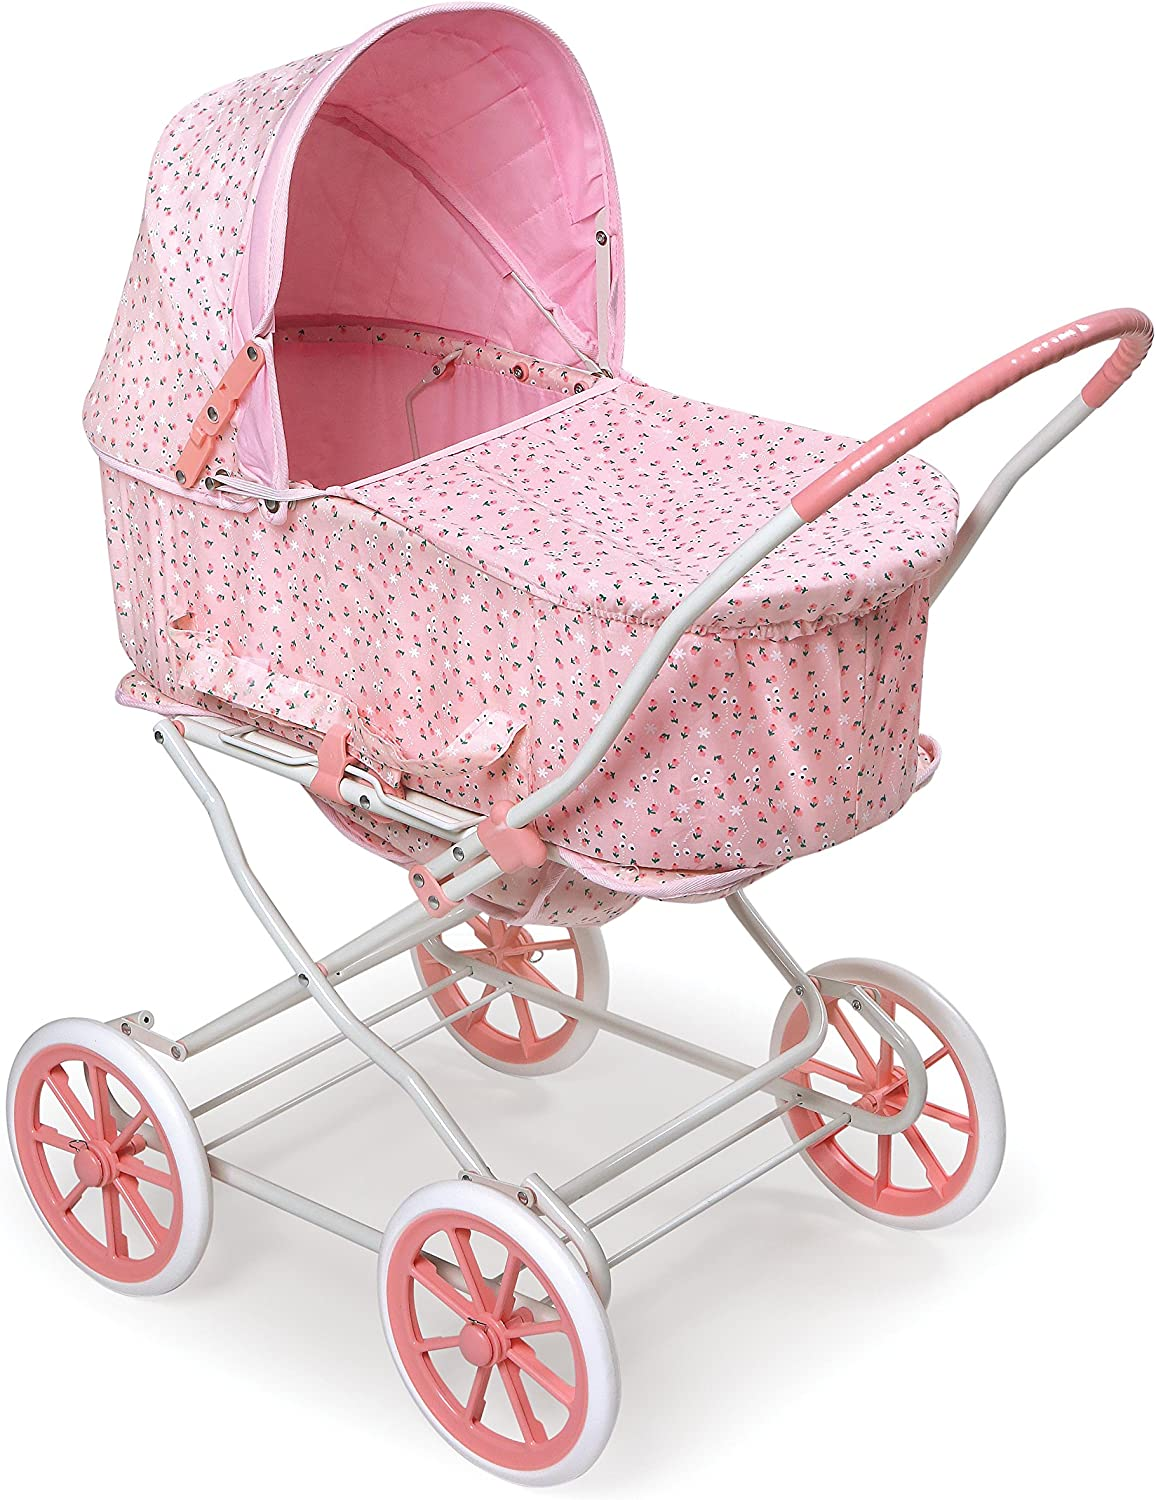 B0007ZKN5U Badger Basket Pink Rosebud 3-in-1 Doll Pram, Carrier, and Stroller (fits American Girl Dolls) 91l2BsBaO1yL